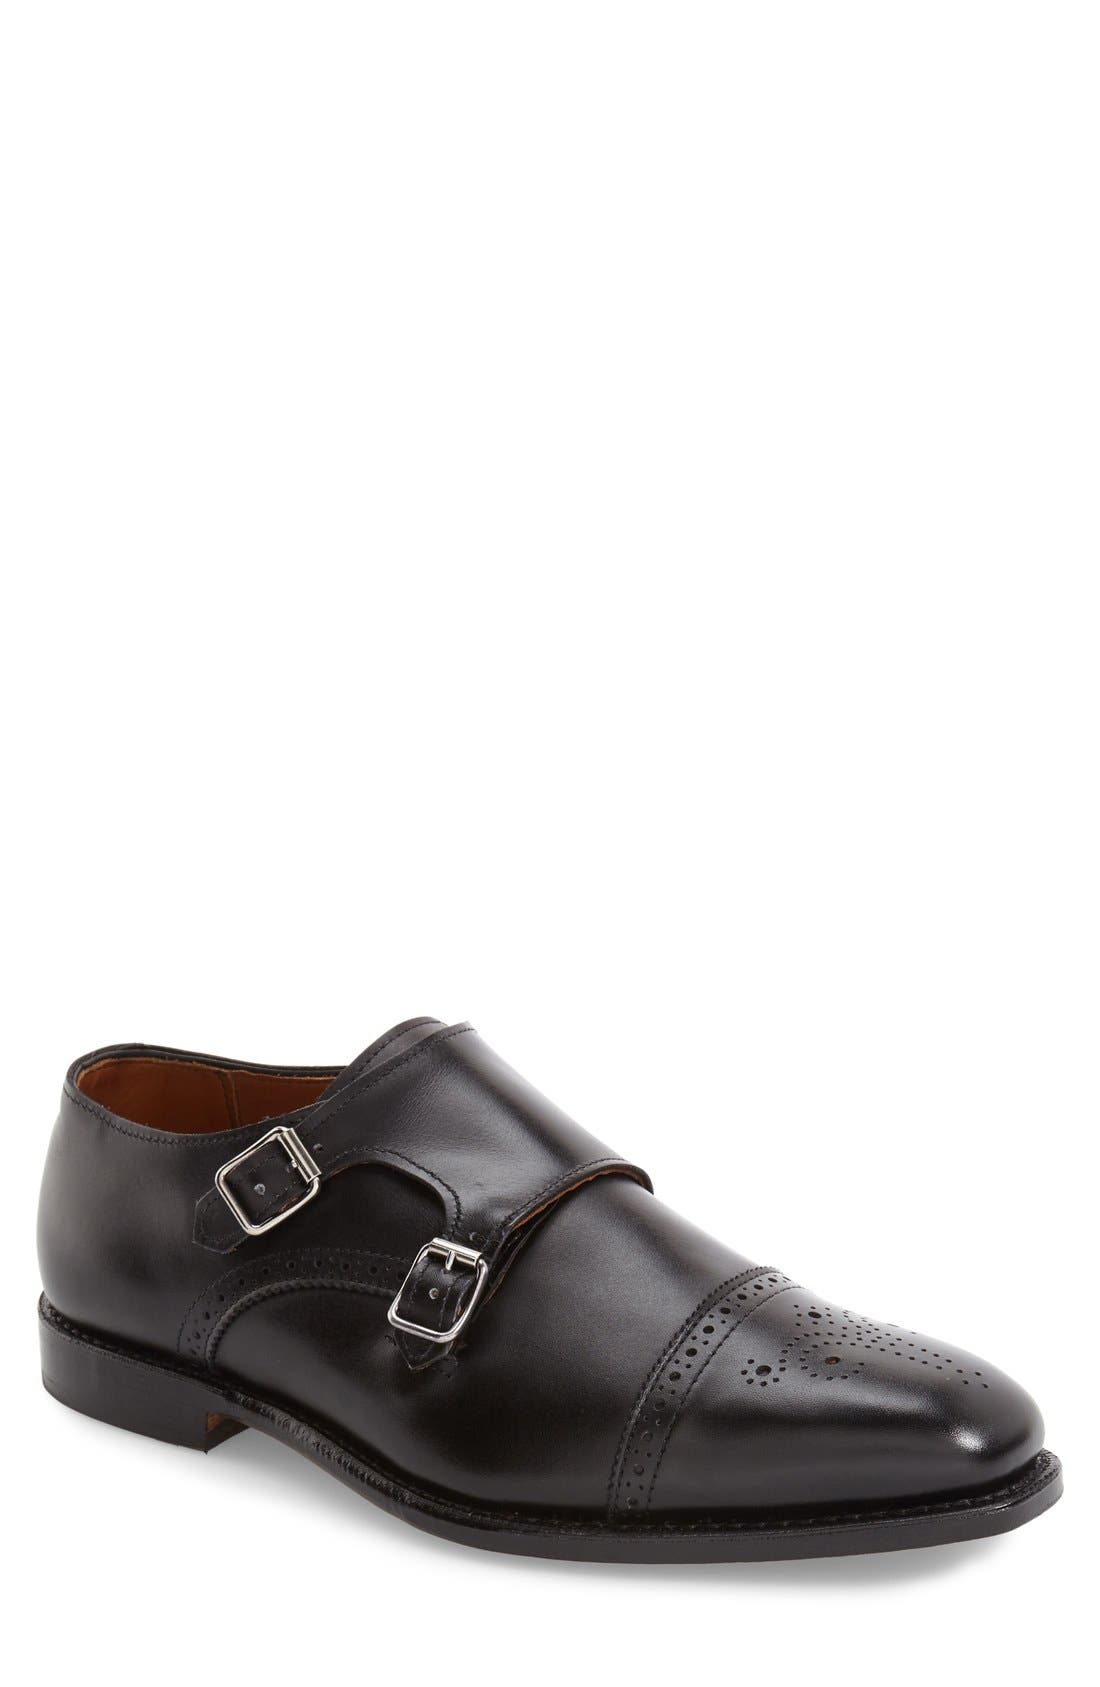 ALLEN EDMONDS, 'St. Johns' Double Monk Strap Shoe, Main thumbnail 1, color, BLACK LEATHER